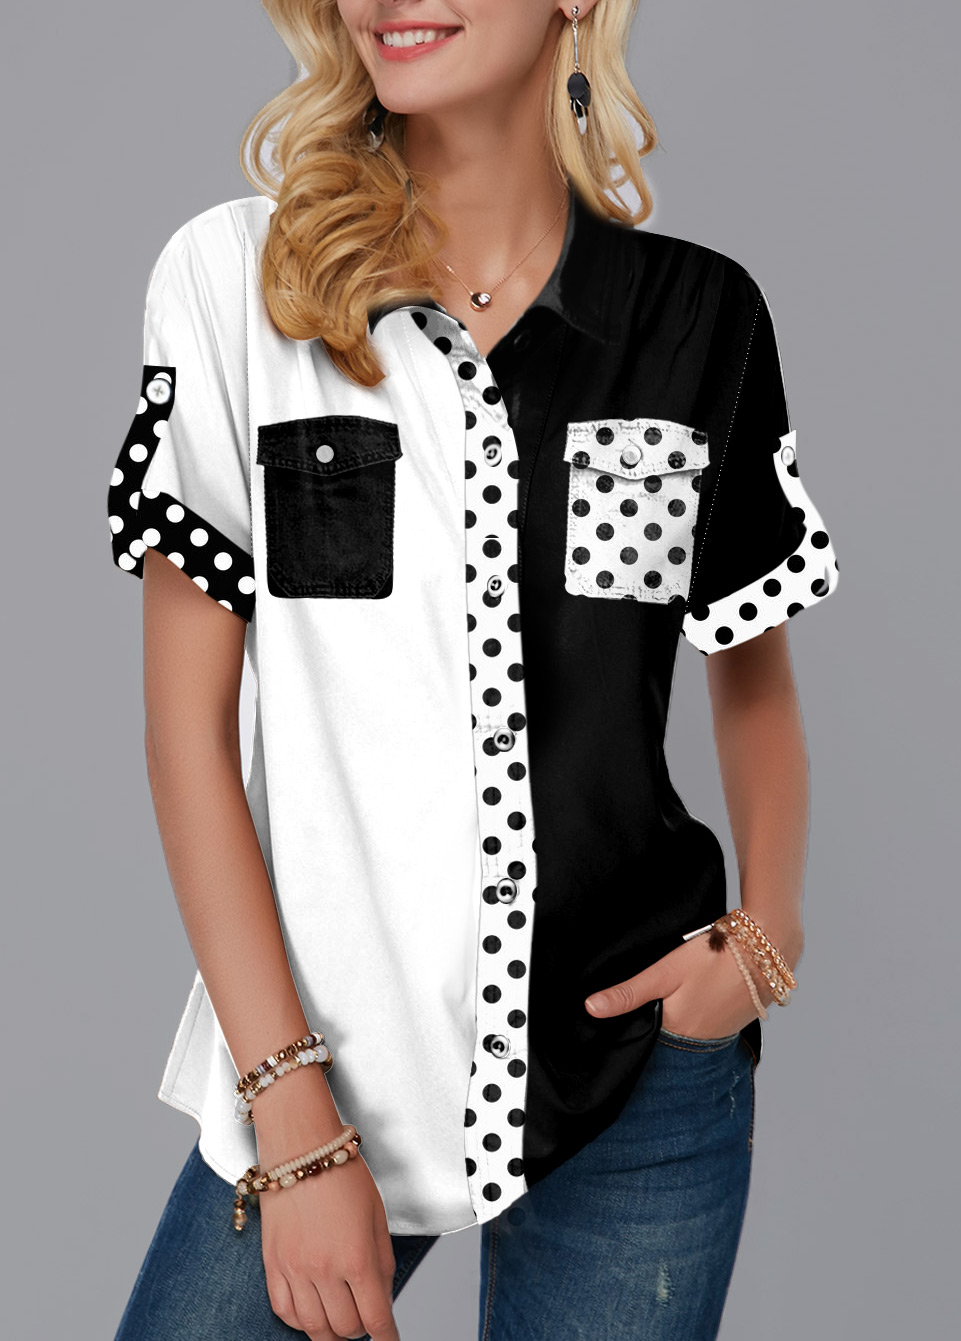 ROTITA Chest Pocket Polka Dot Color Block Blouse